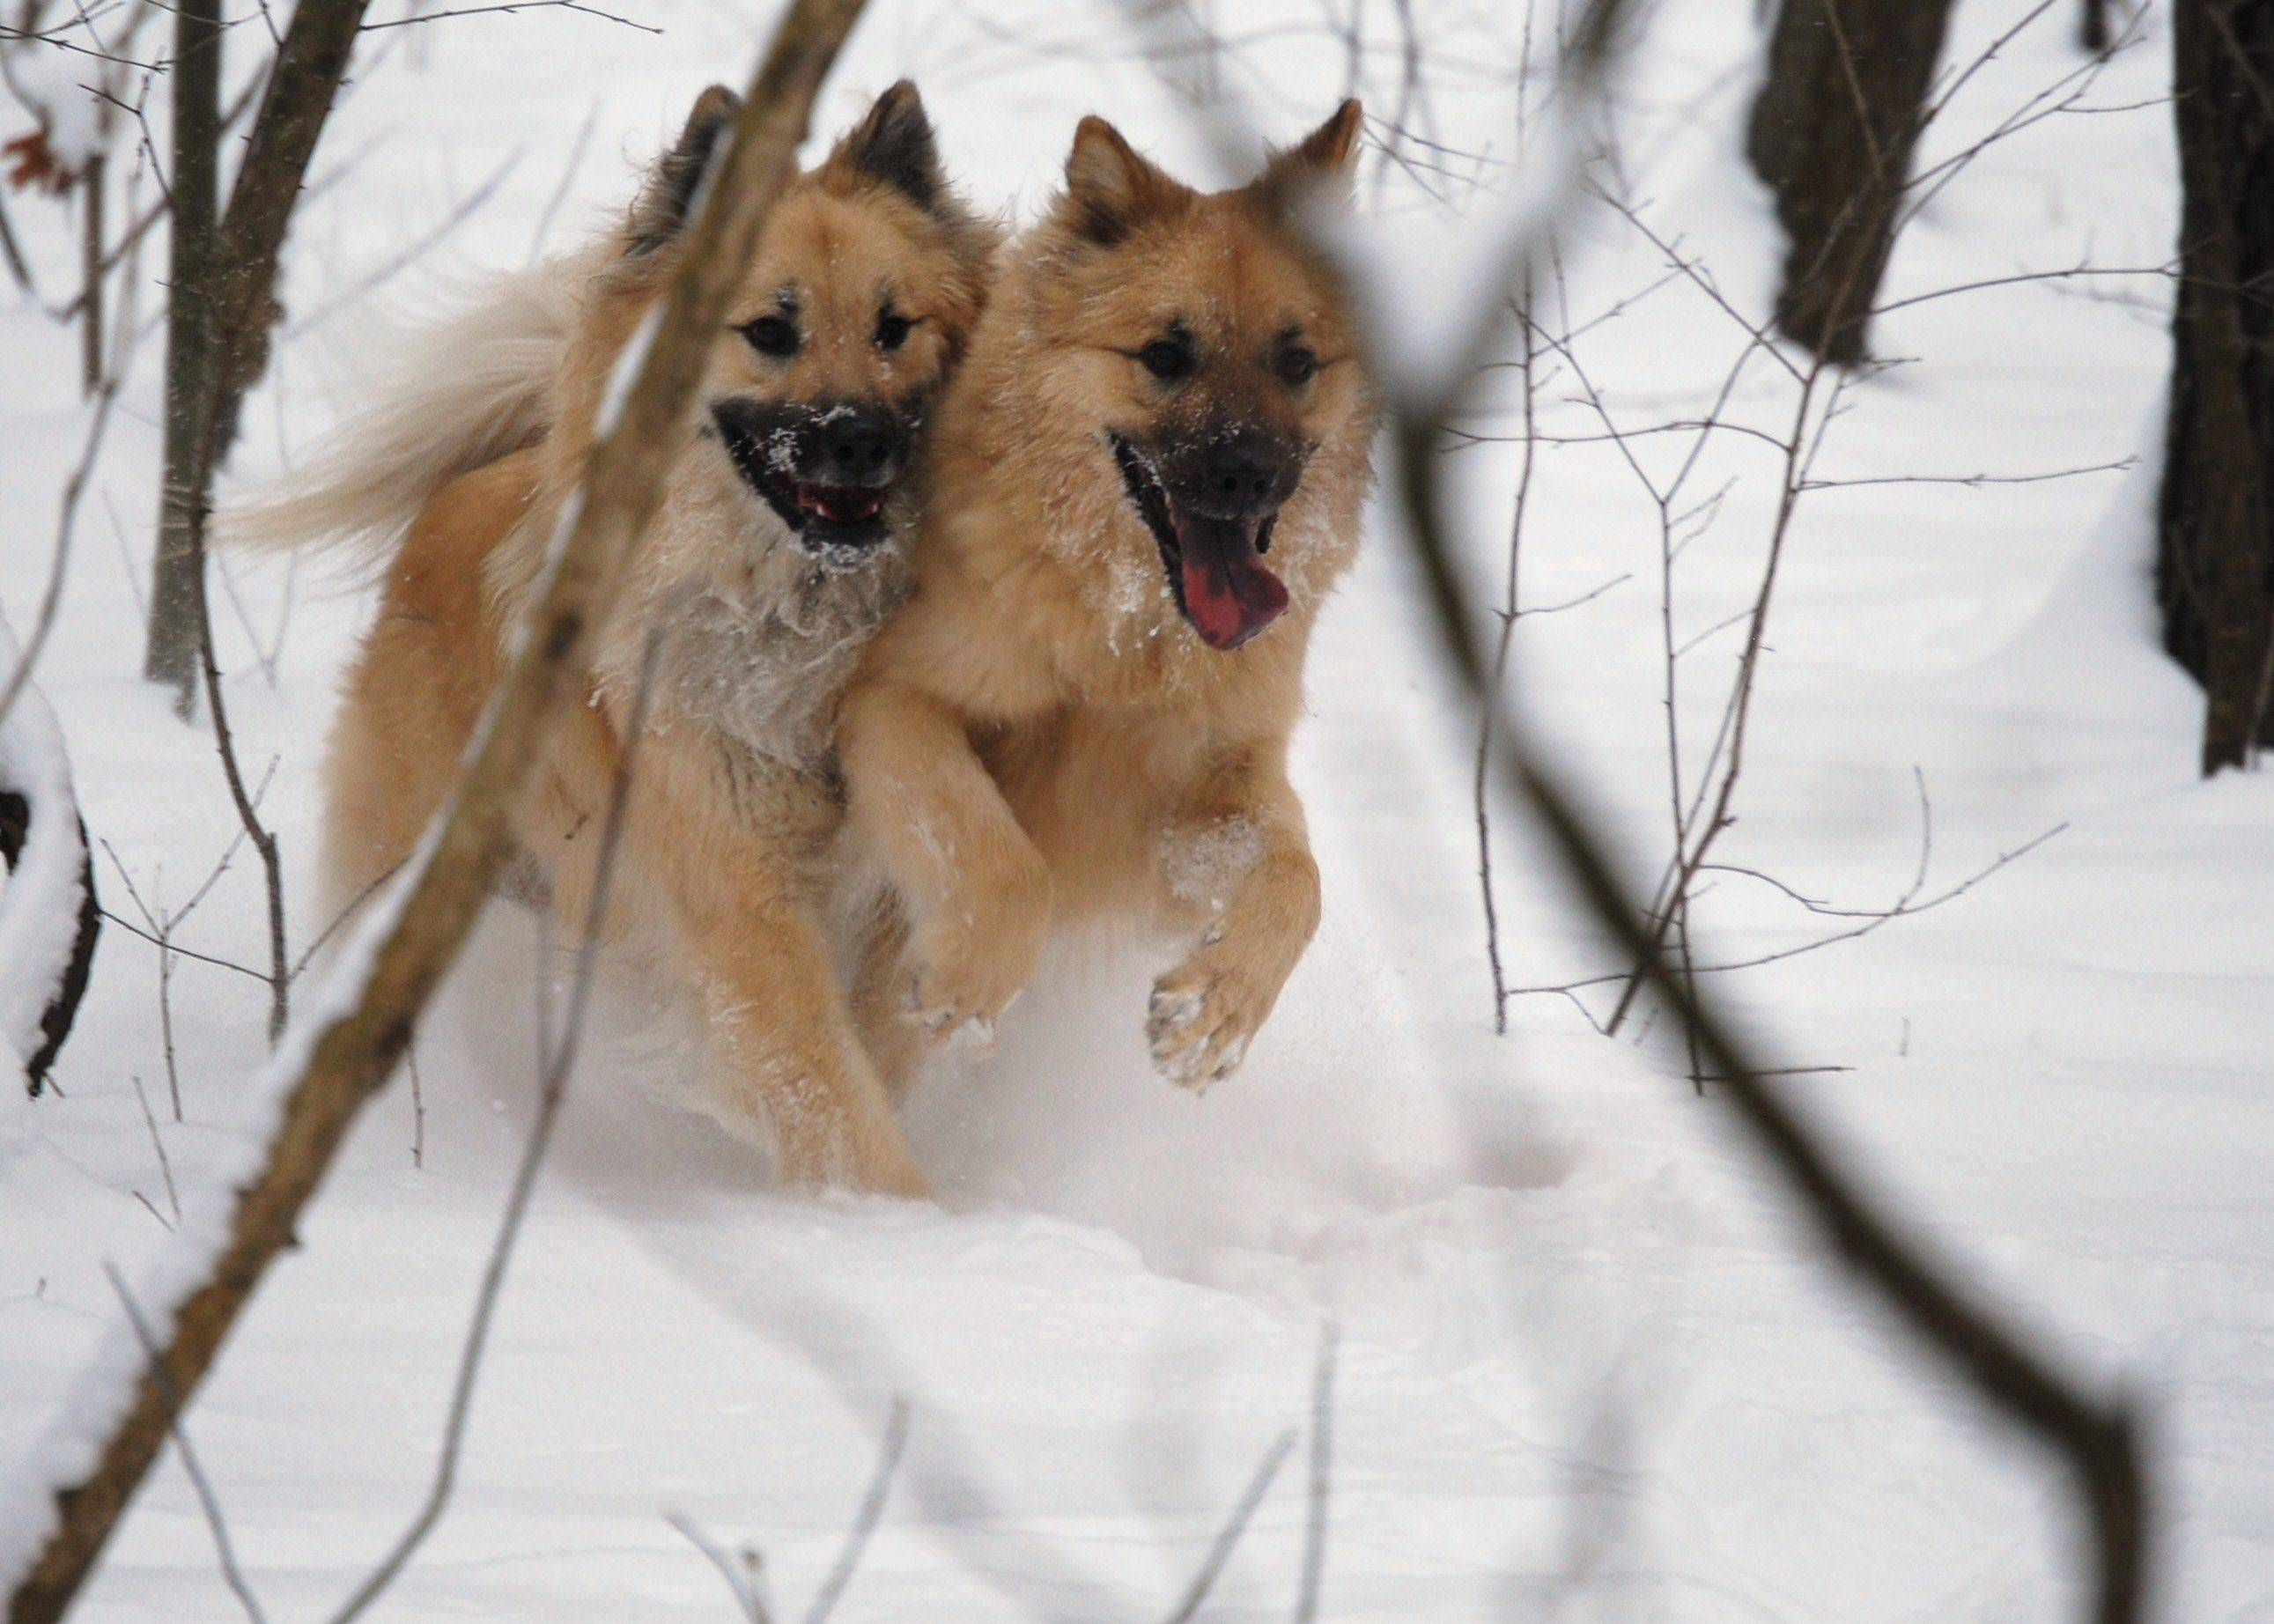 Debra Ferguson of KildeerBrothers Theo and Hoagi race through the woods on a snowy day at the dog park.